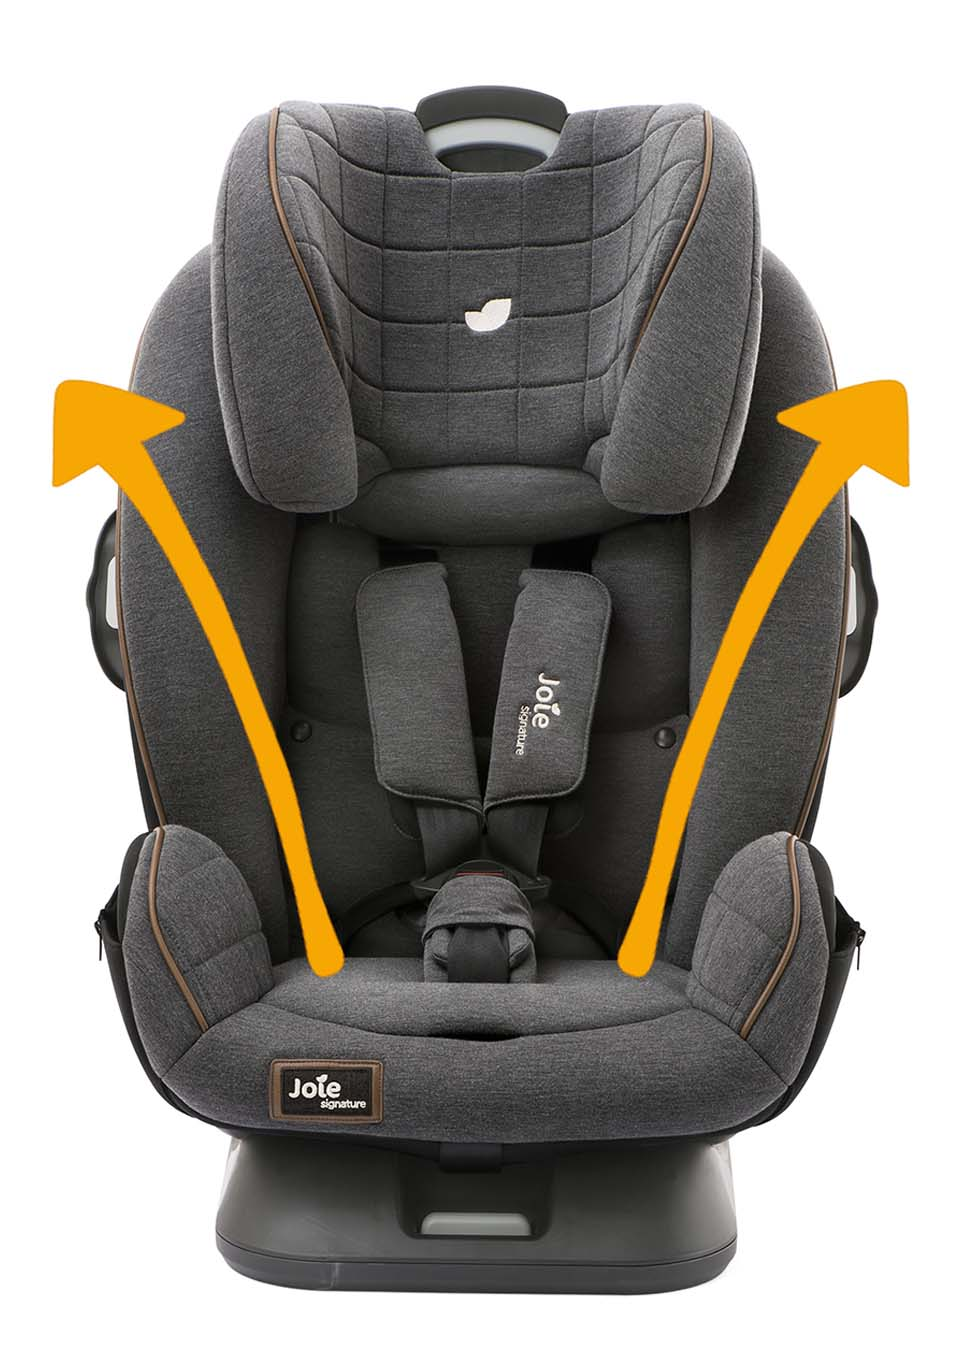 Joie Isofix Base Uk I Travvel Signature Joie Australia Explore Joie